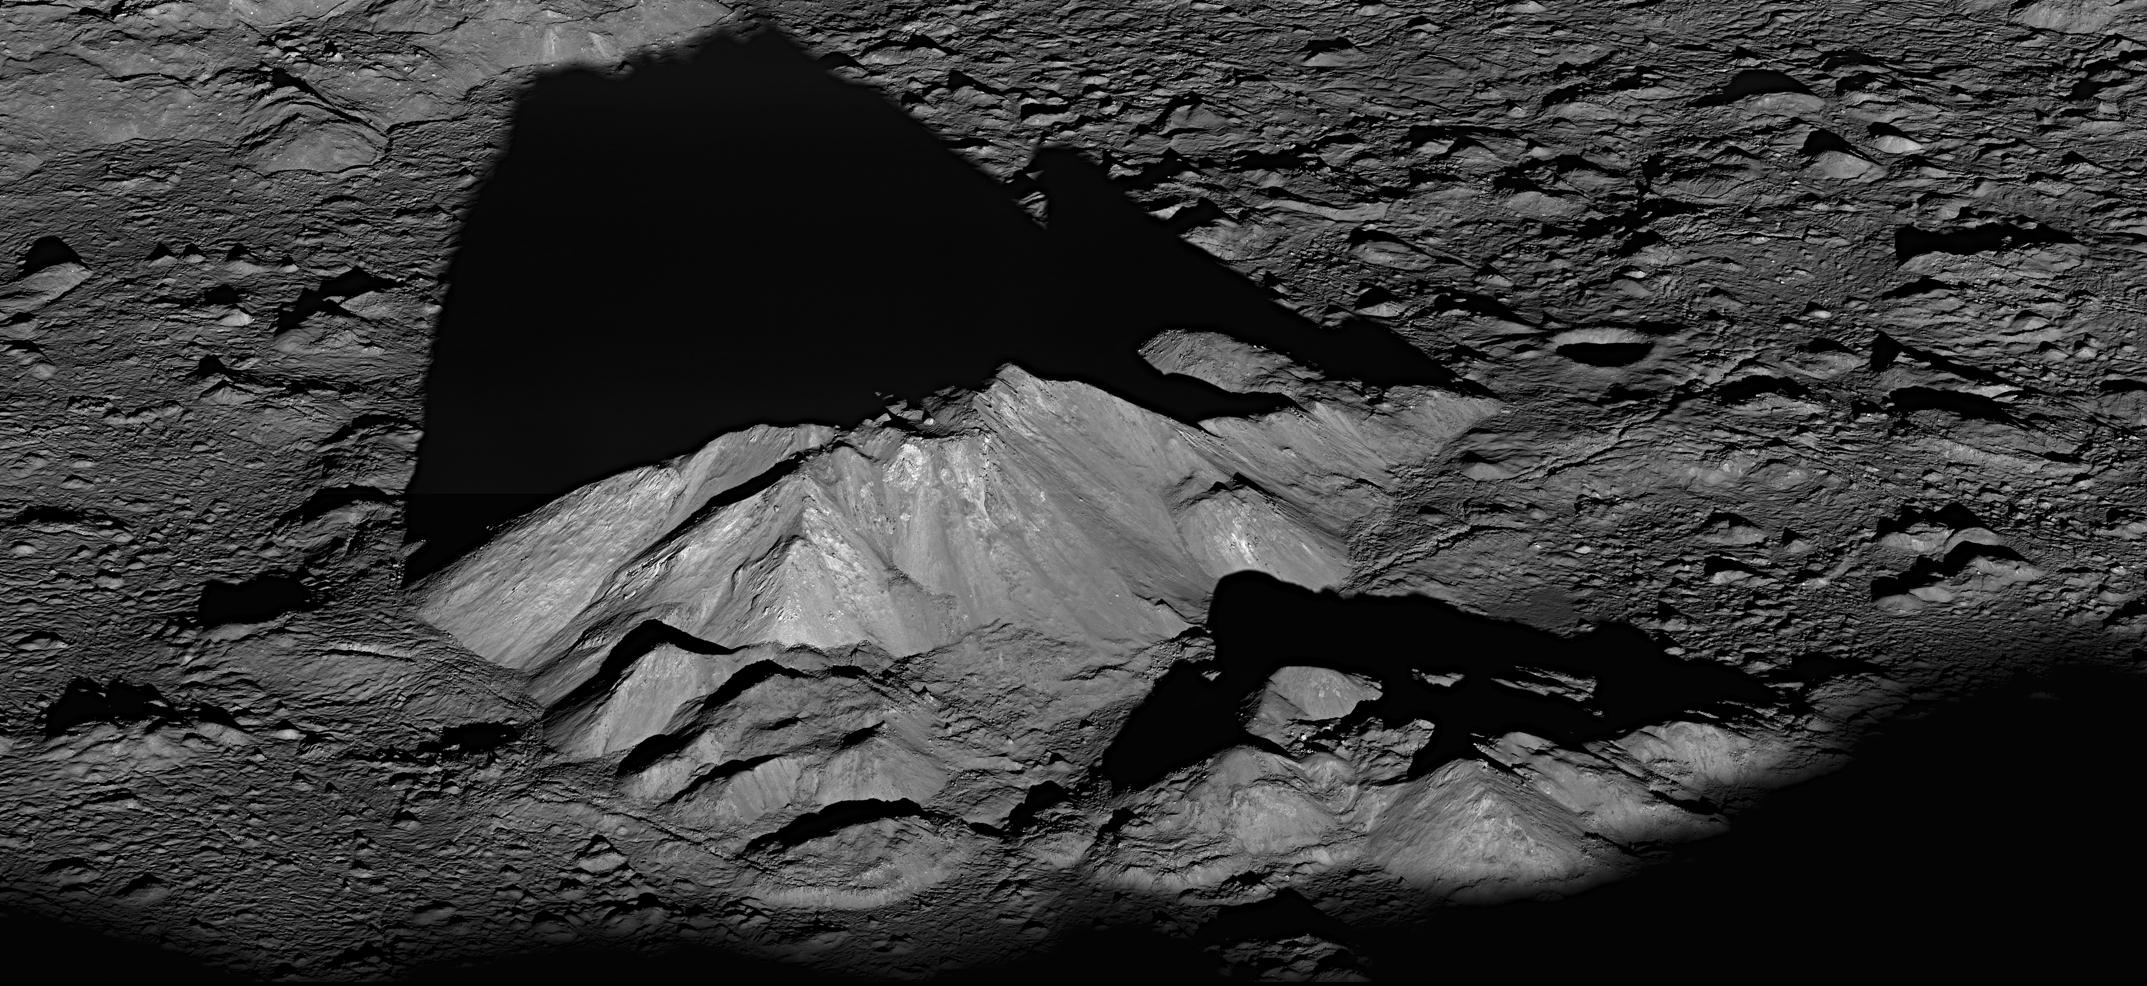 Color image of mountain on the Moon.